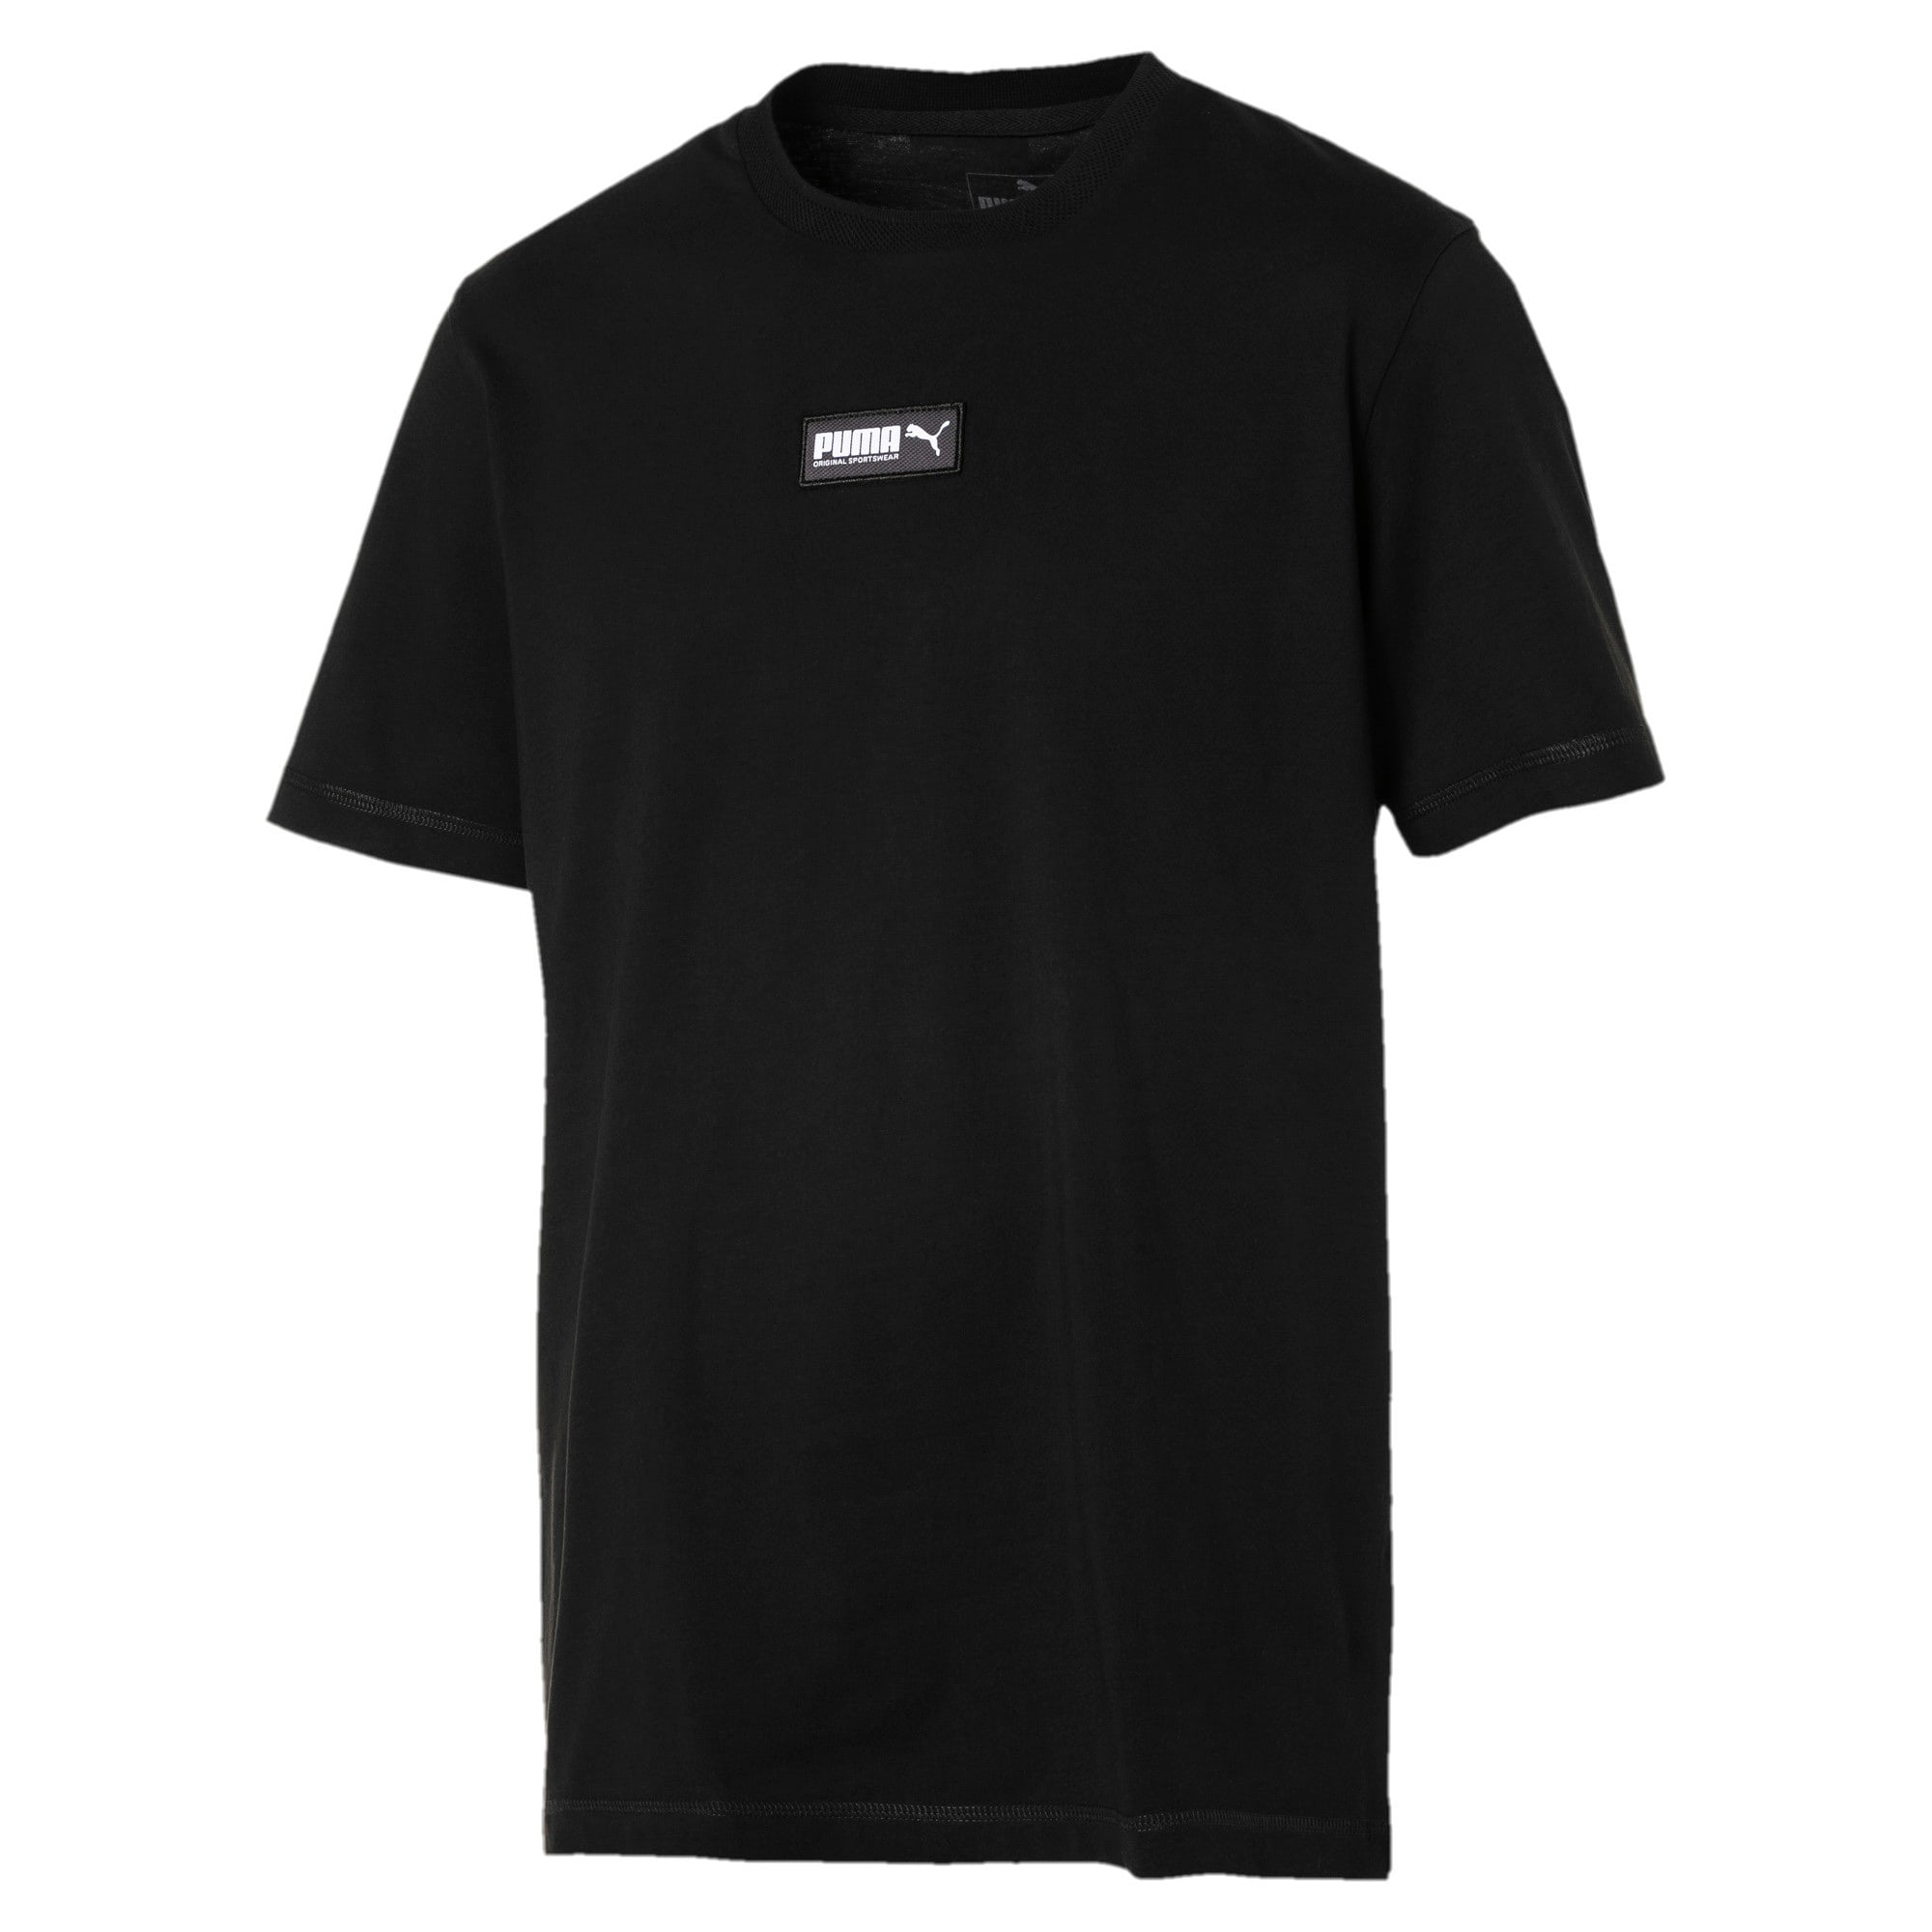 Thumbnail 1 of Fusion Short Sleeve Men's Tee, Cotton Black, medium